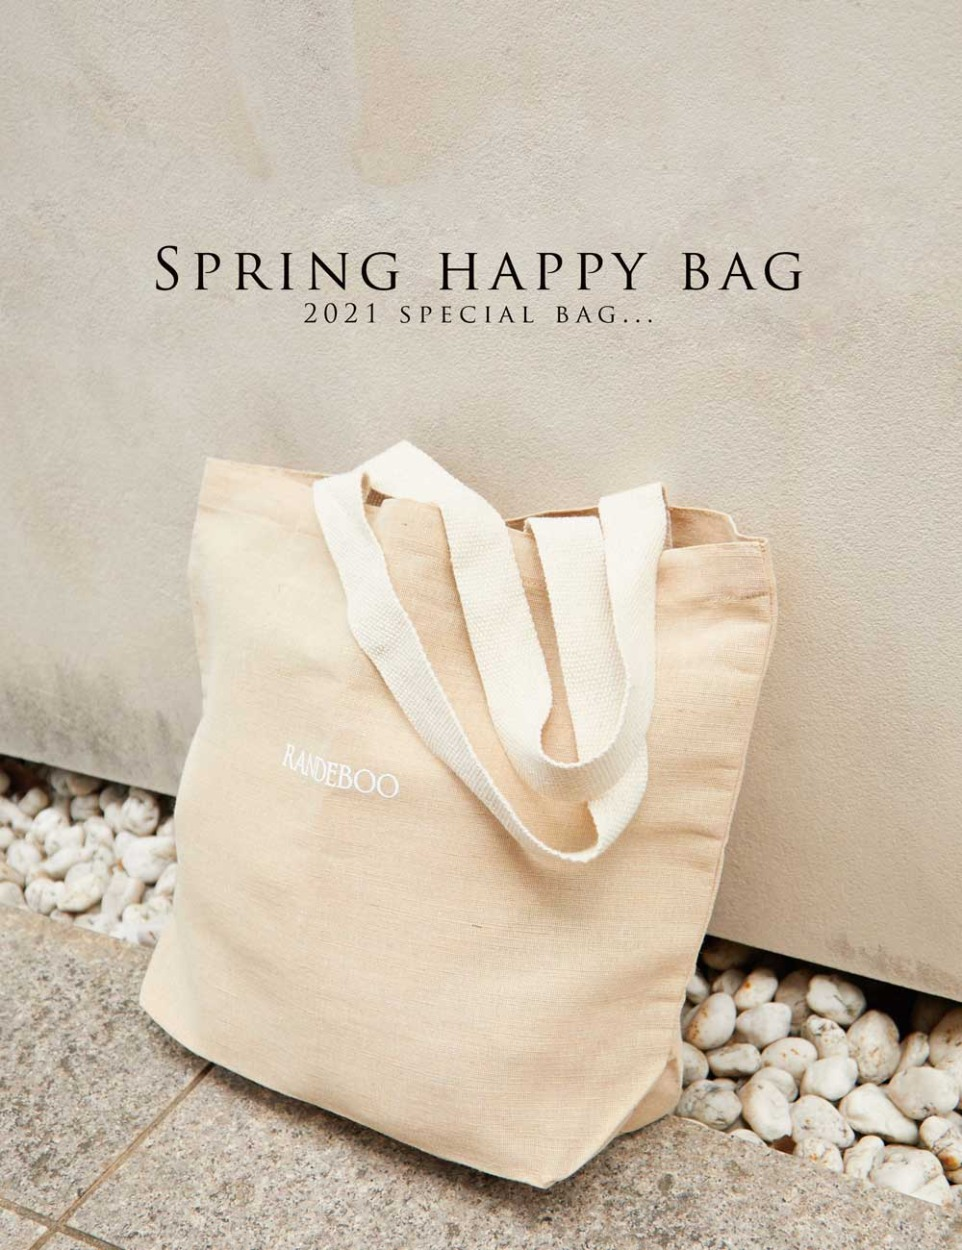 SS Happy bag